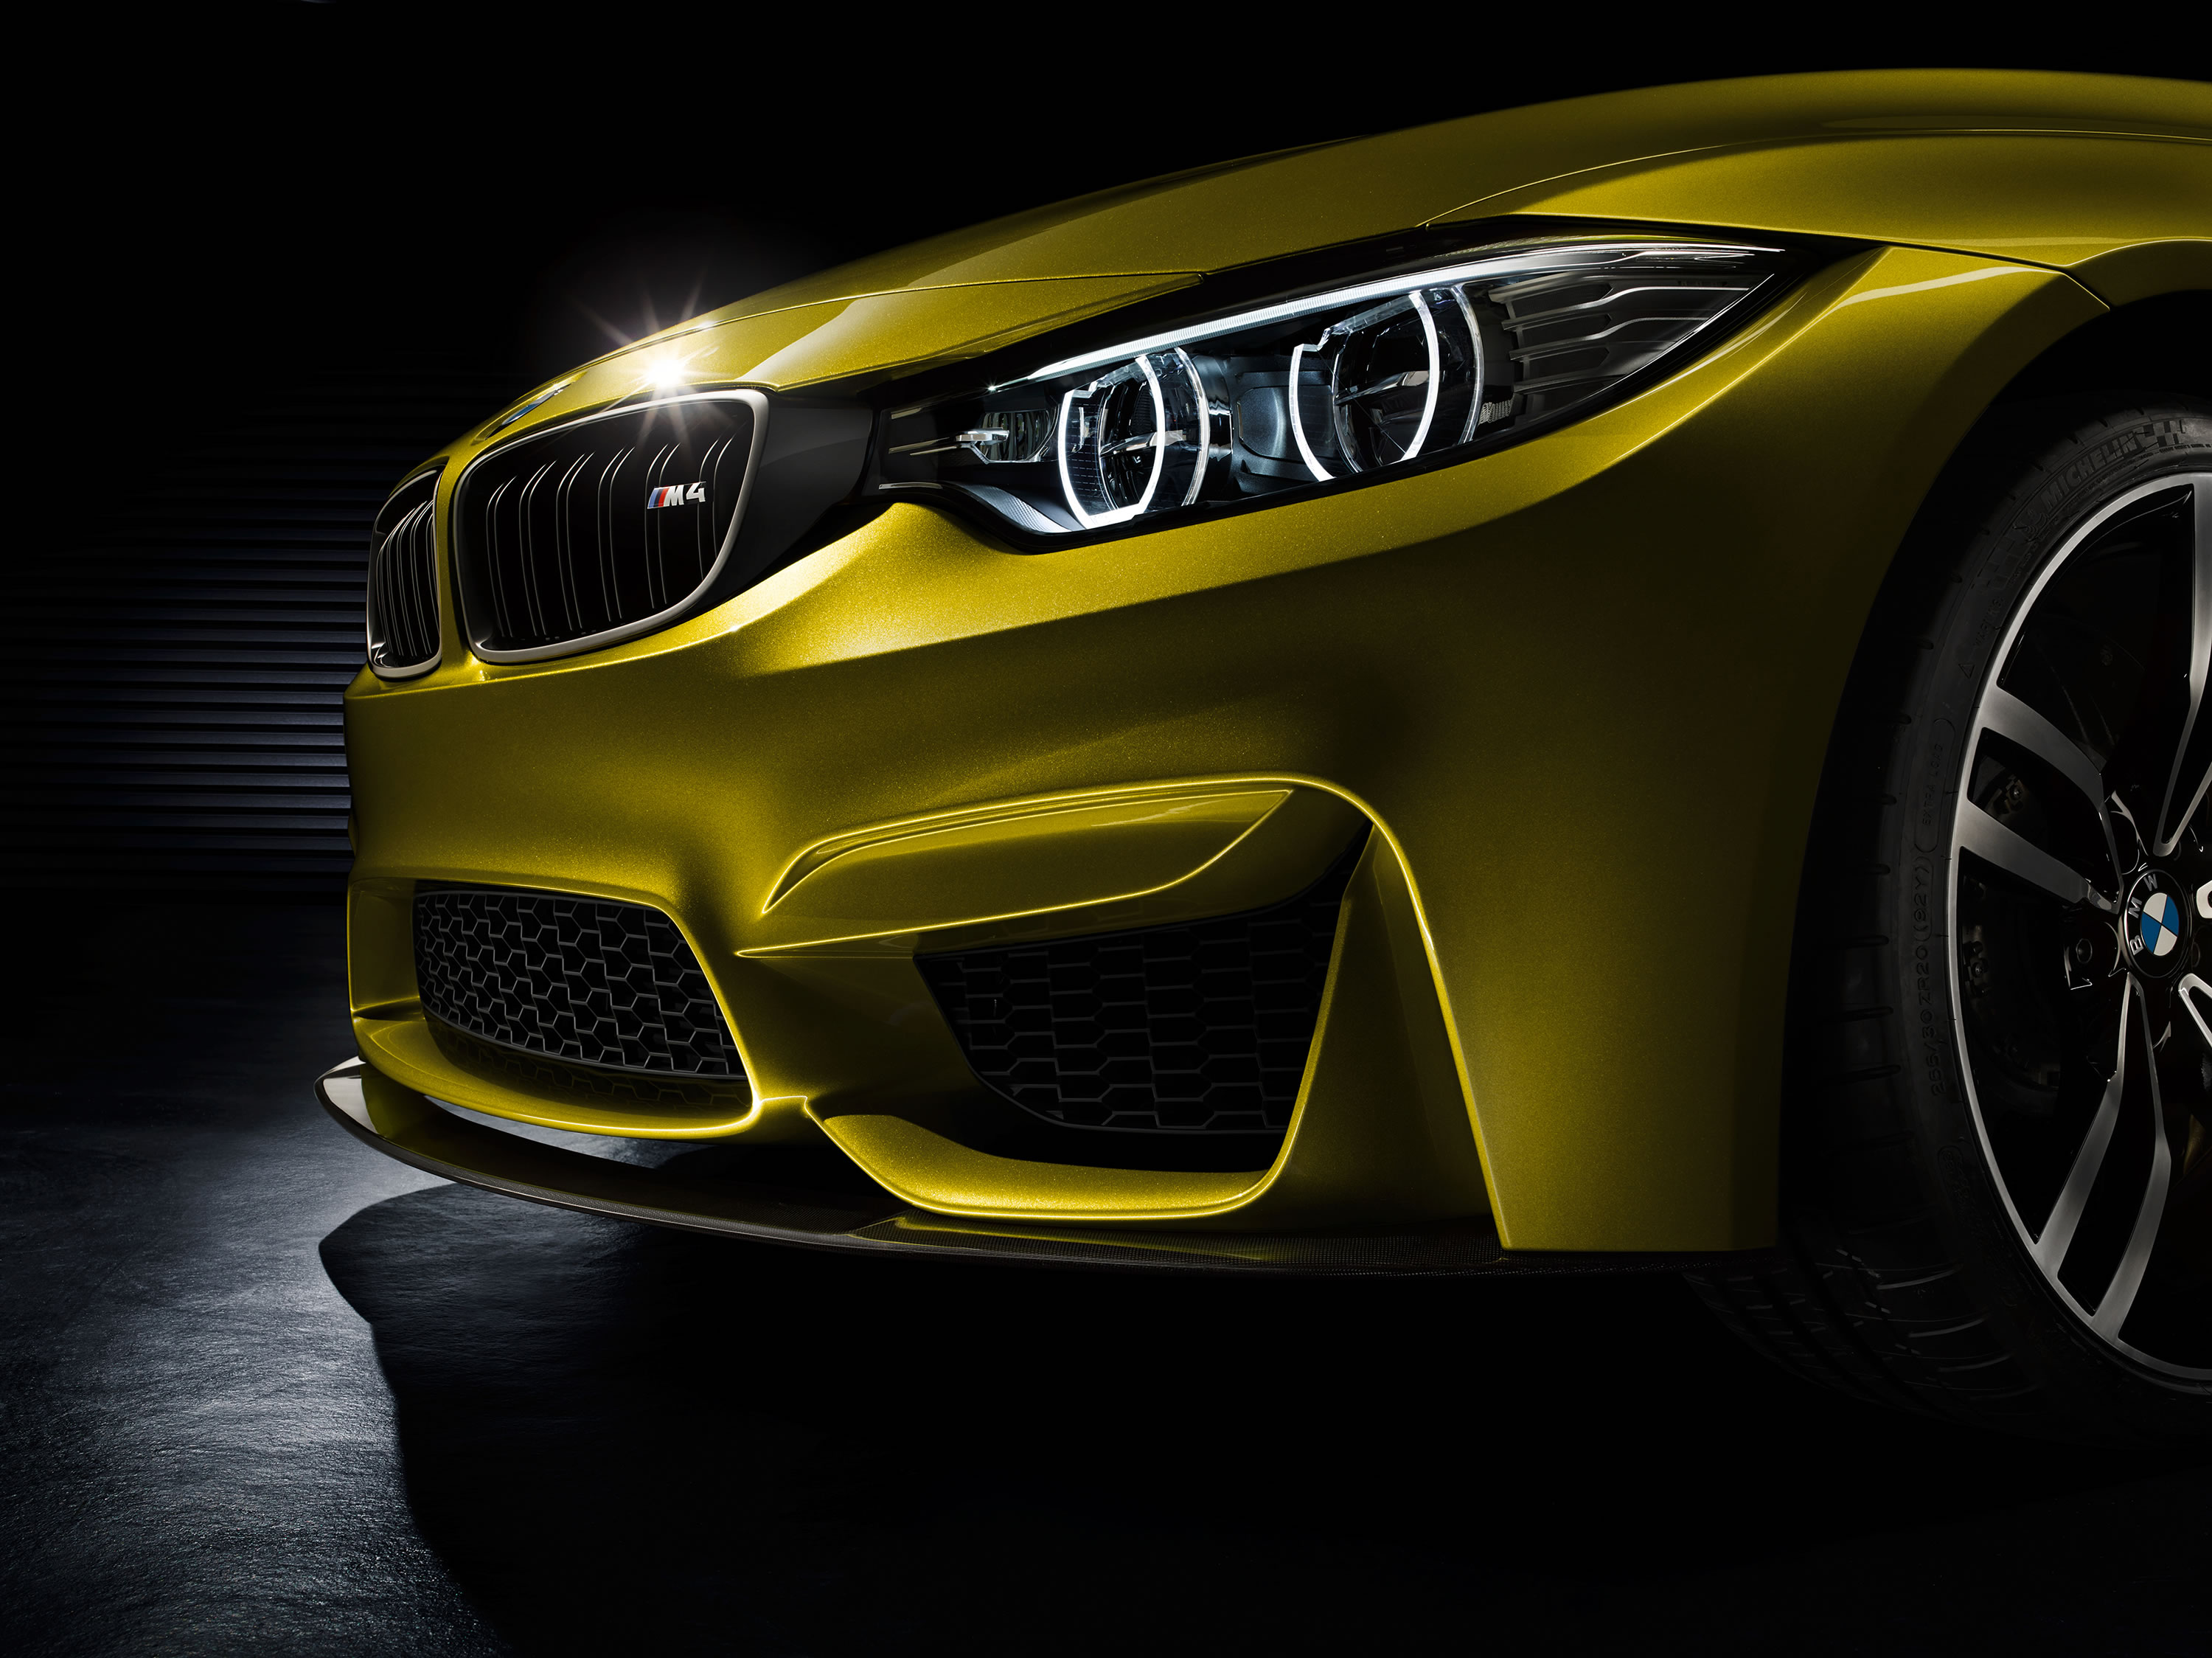 2013 Bmw M4 Coupe Concept Photos Specs And Review Rs